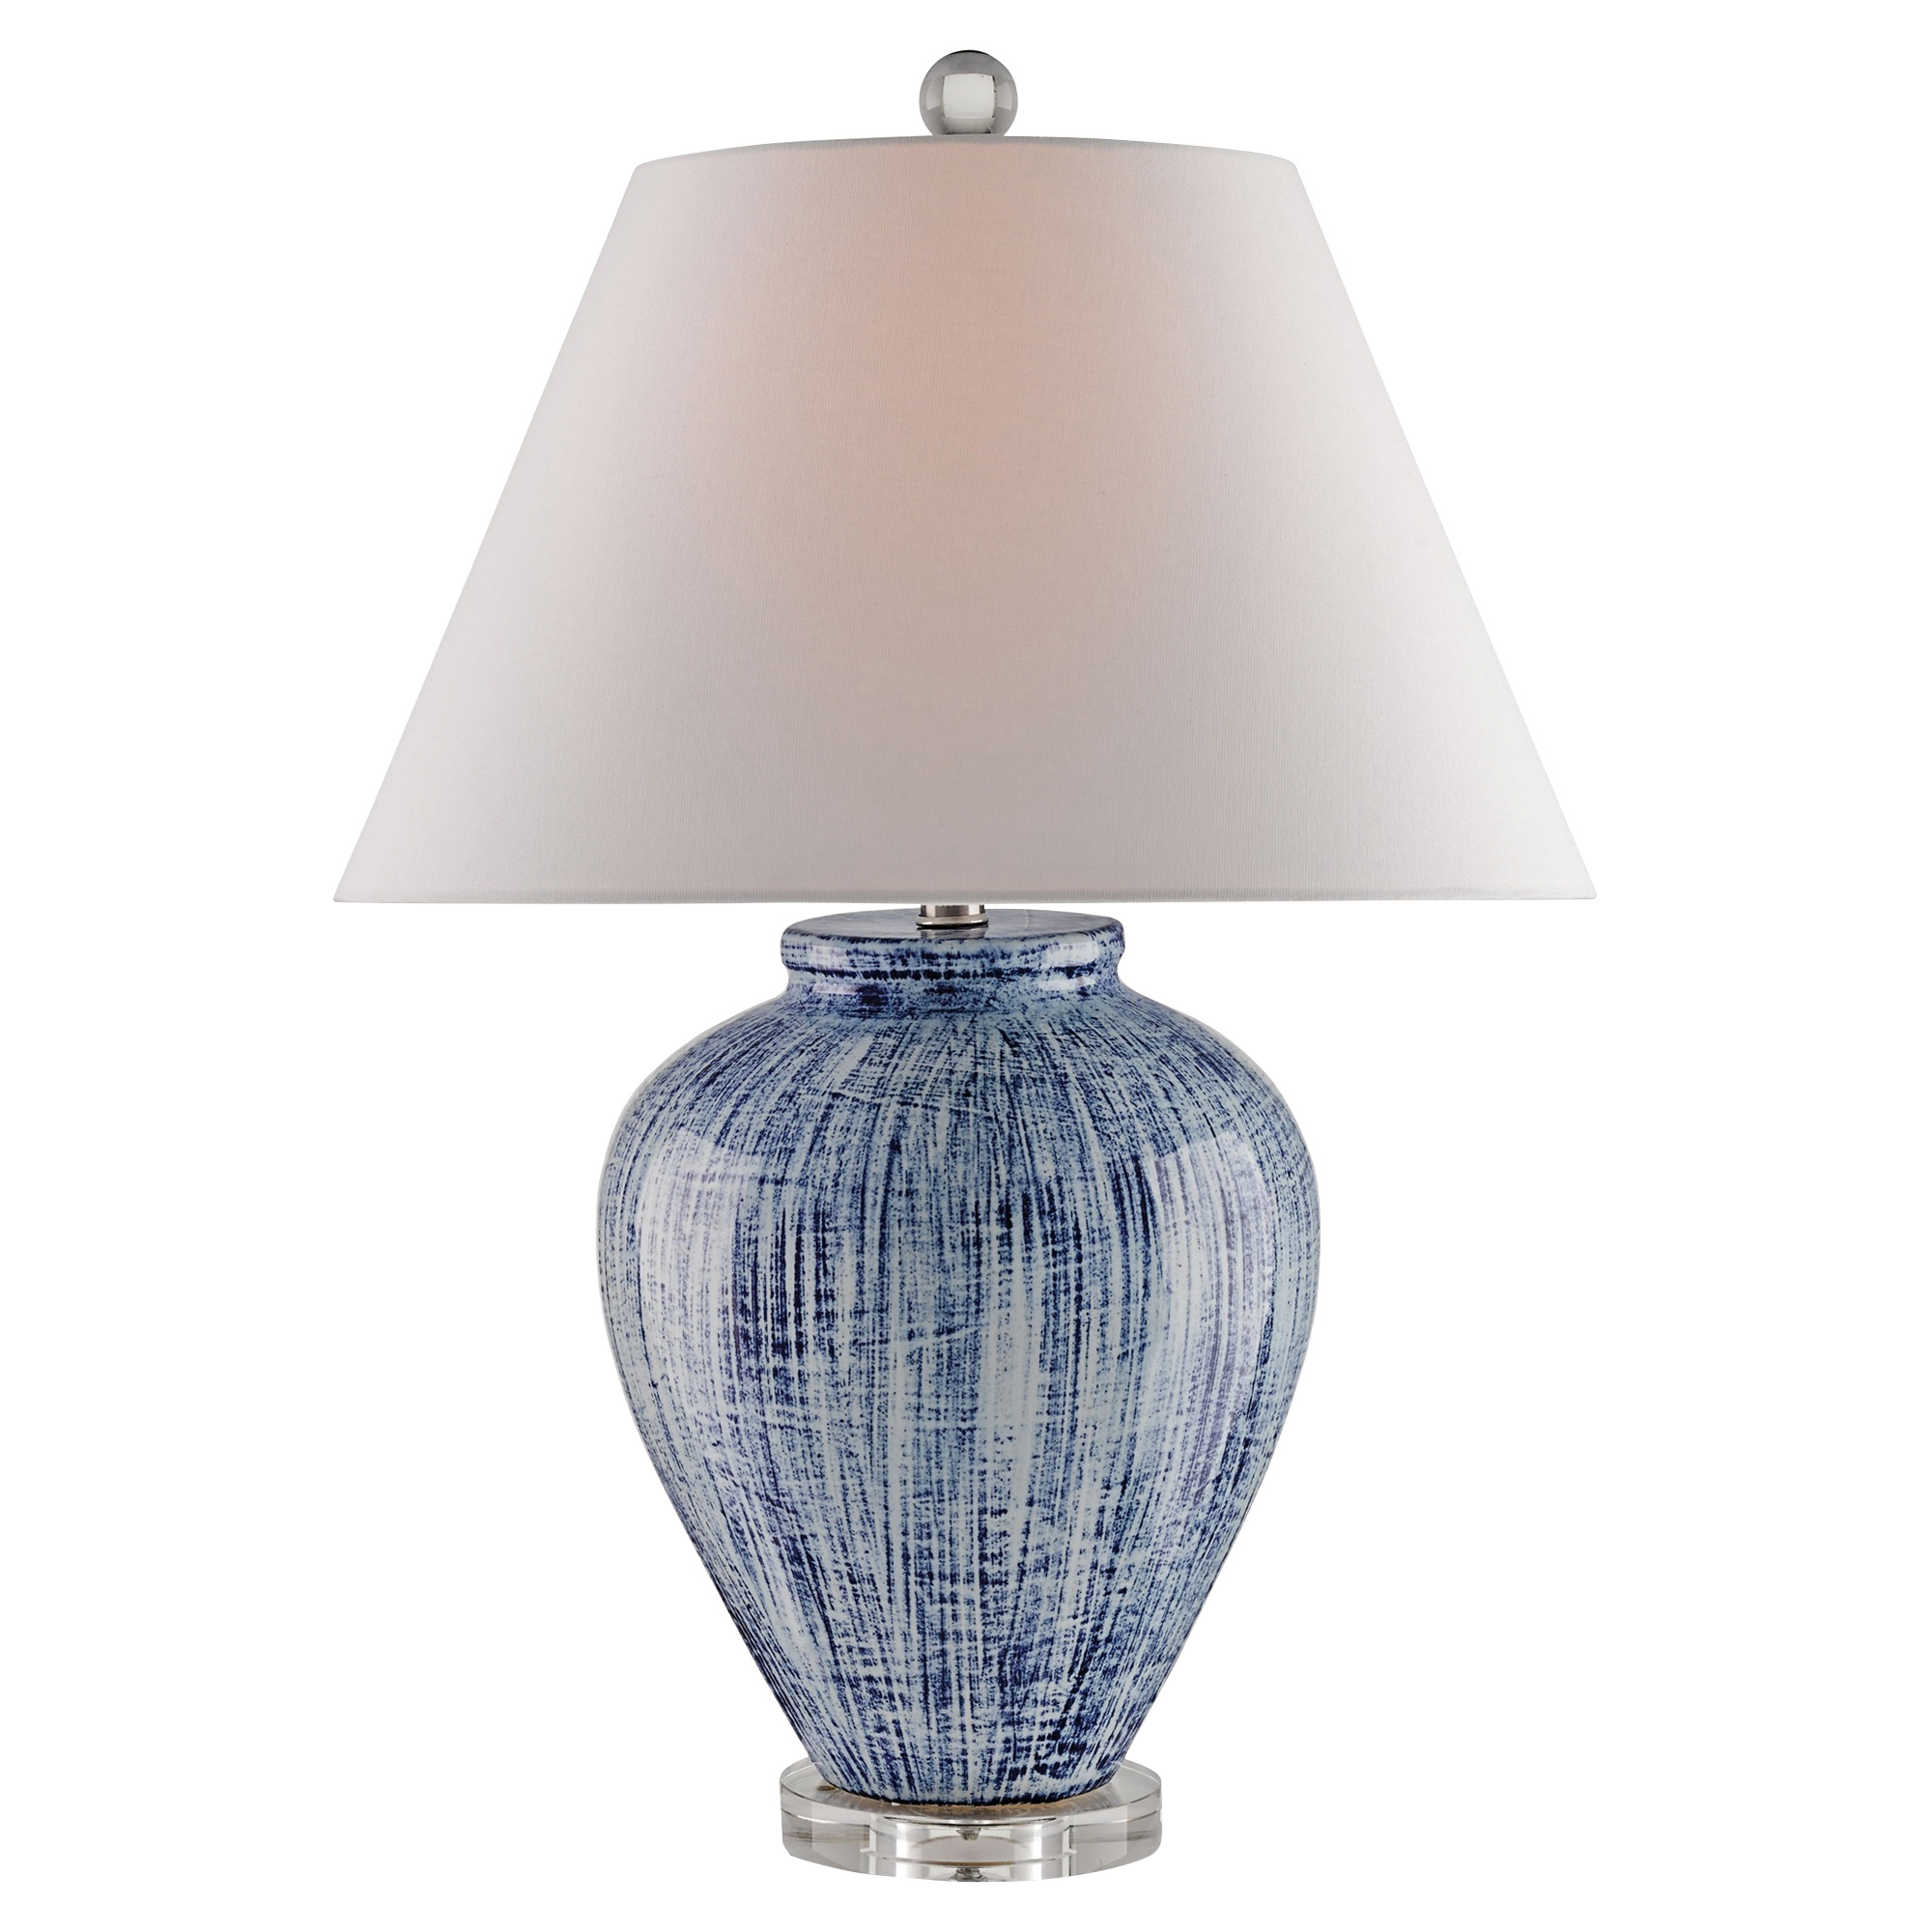 Leala Coastal Boho Hand Glazed Blue Ceramic Table Lamp